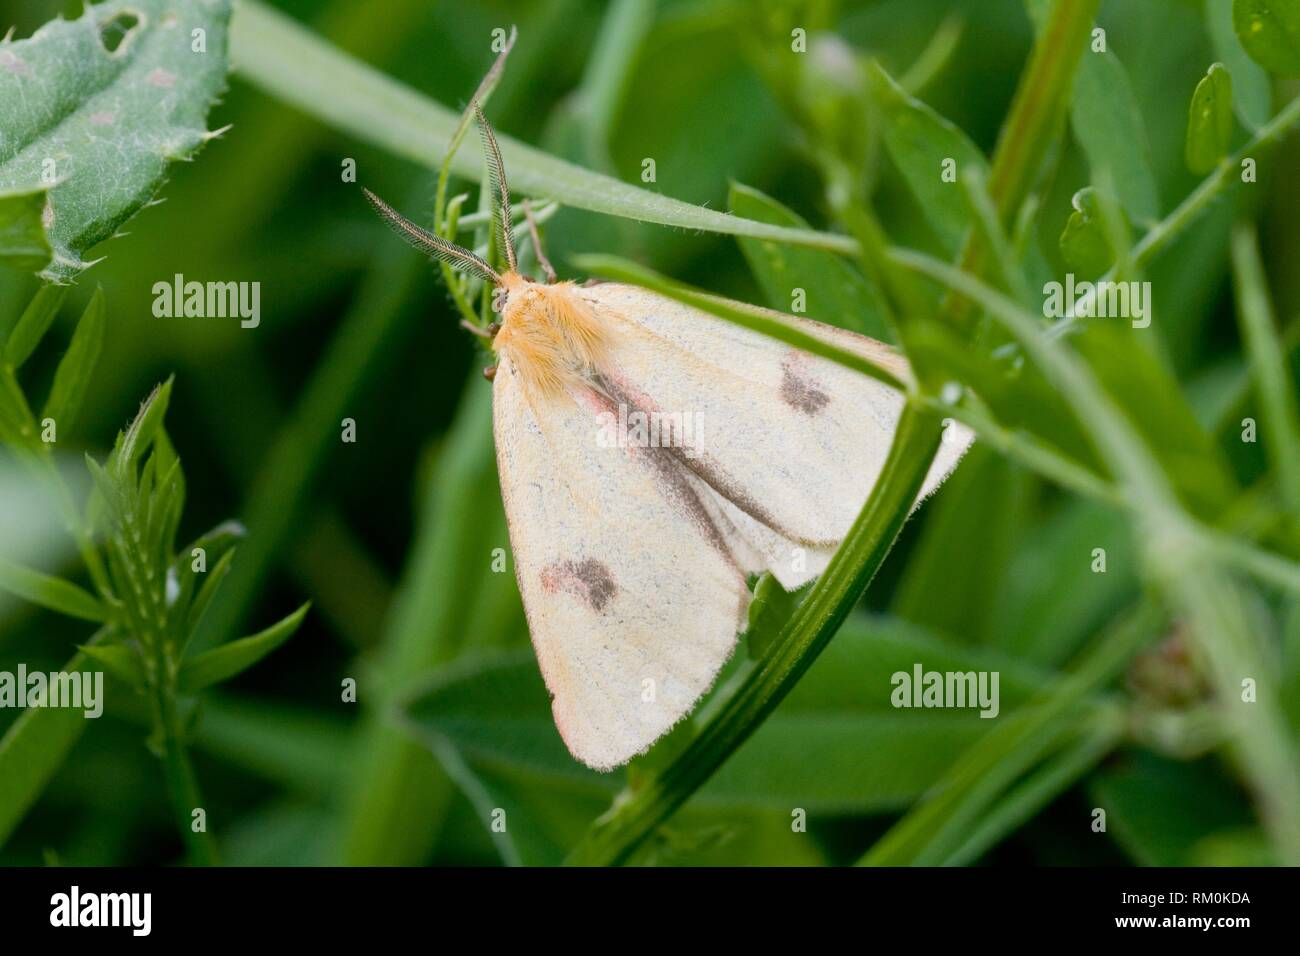 """Clouded Buff, Diacrisia sannio. Wingspan: 35â. """"50 mm. Found in Palearctic ecozone. Male has lemon-yellow wings and female is reddish brown. - Stock Image"""